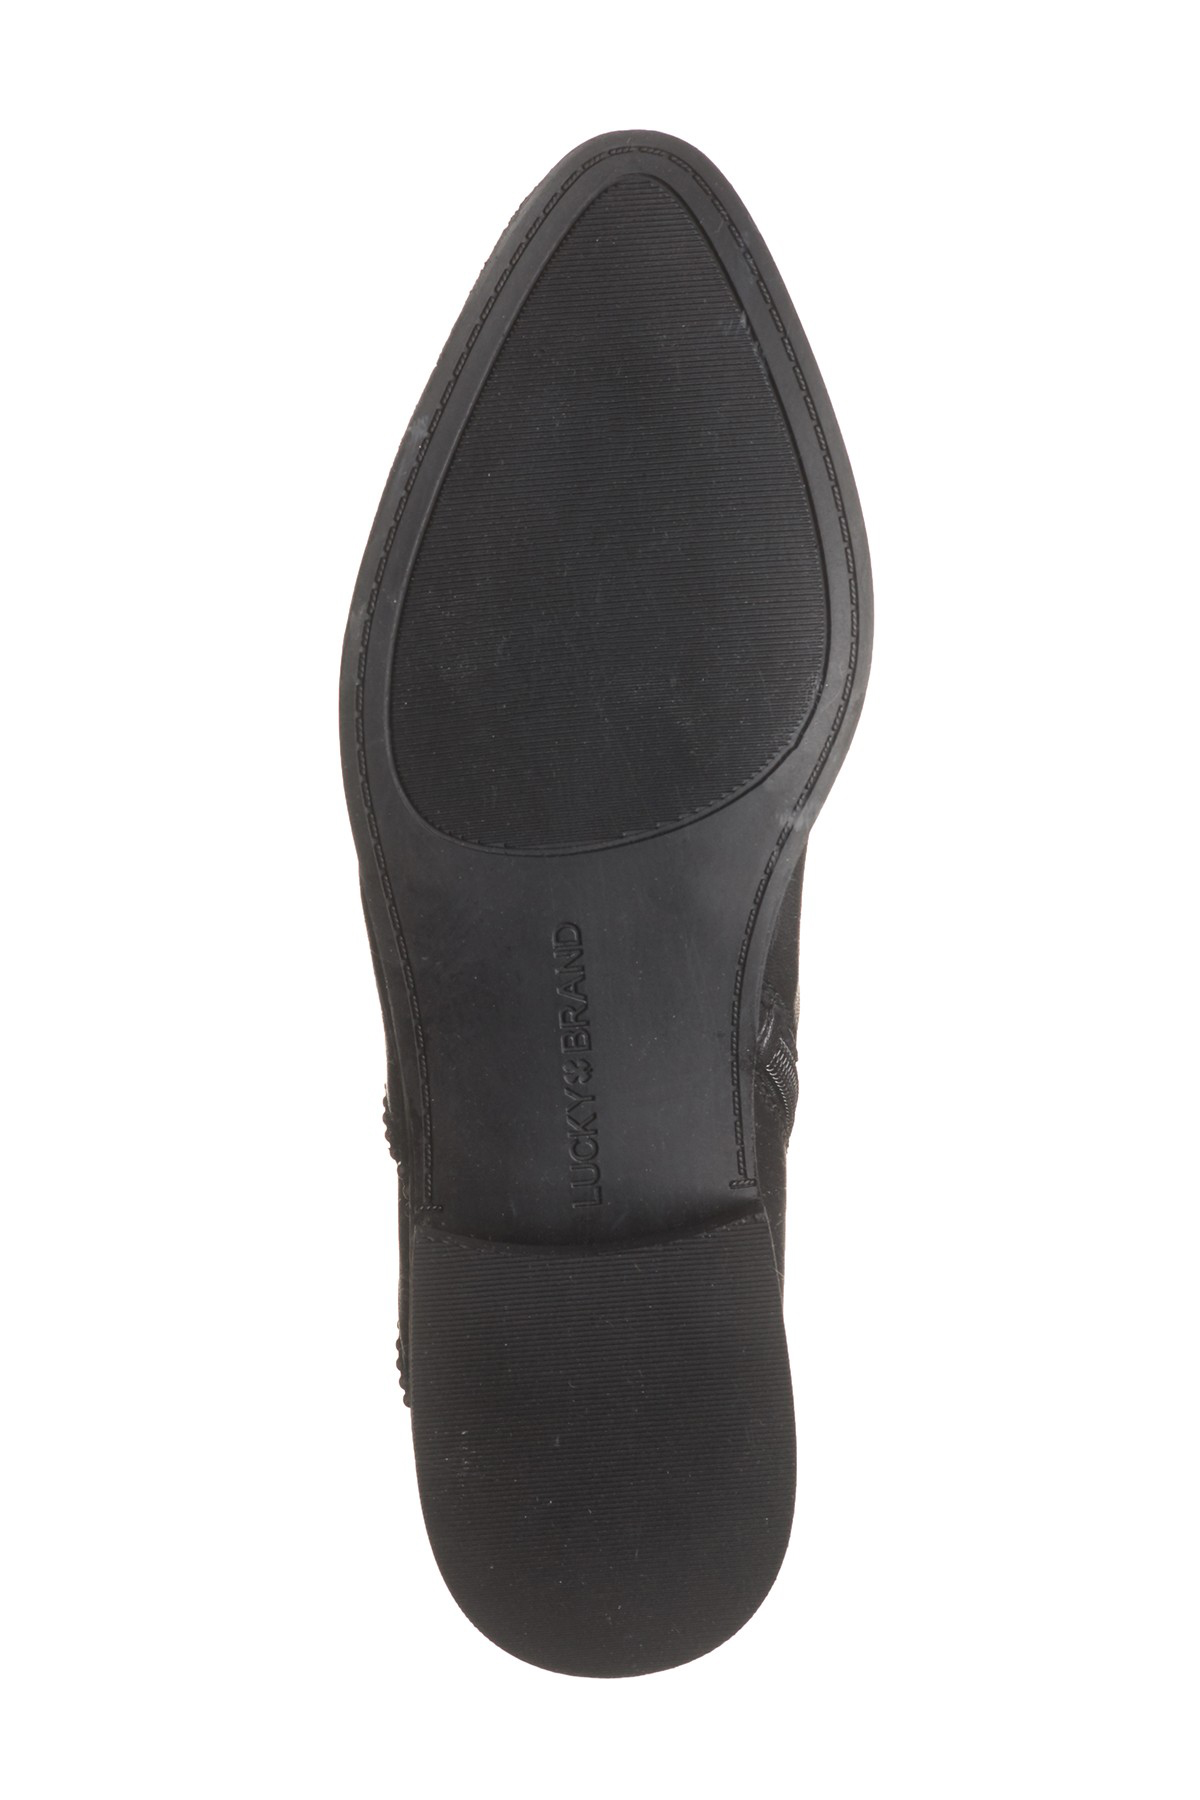 Lucky-Brand-Perrma-Curved-Topline-Pinpoint-Studed-Moto-Edge-Bootie thumbnail 6